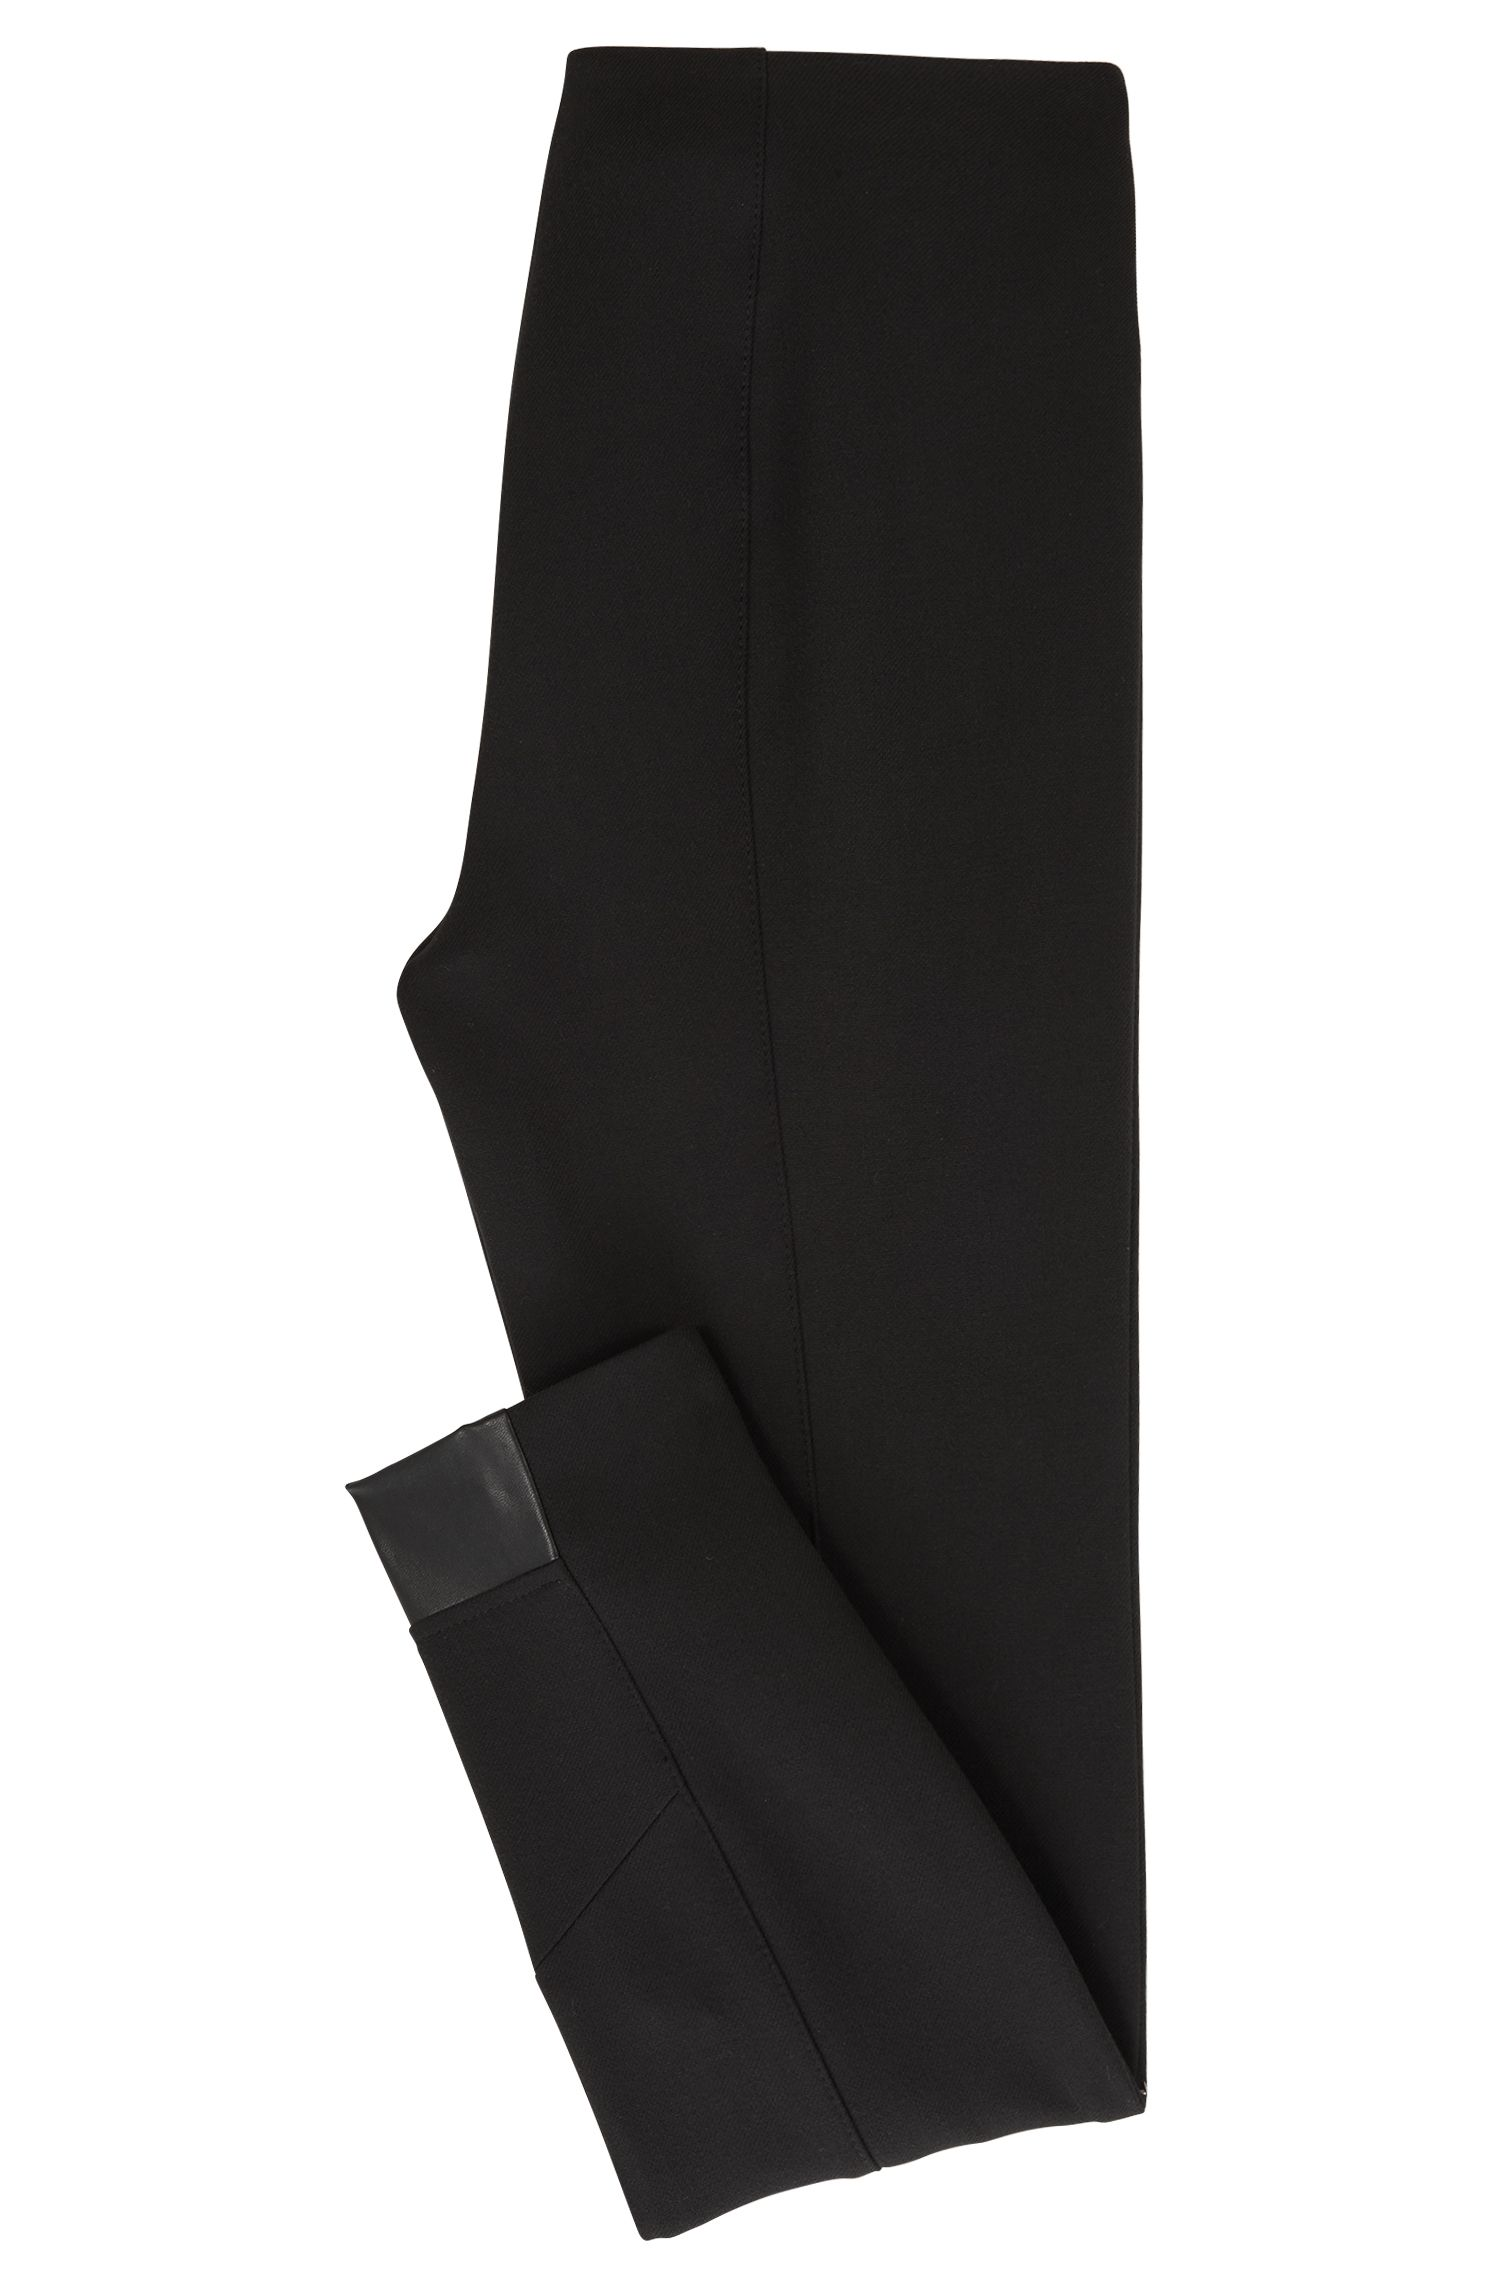 Pantalon Slim Fit en twill stretch à empiècements contrastants, Noir